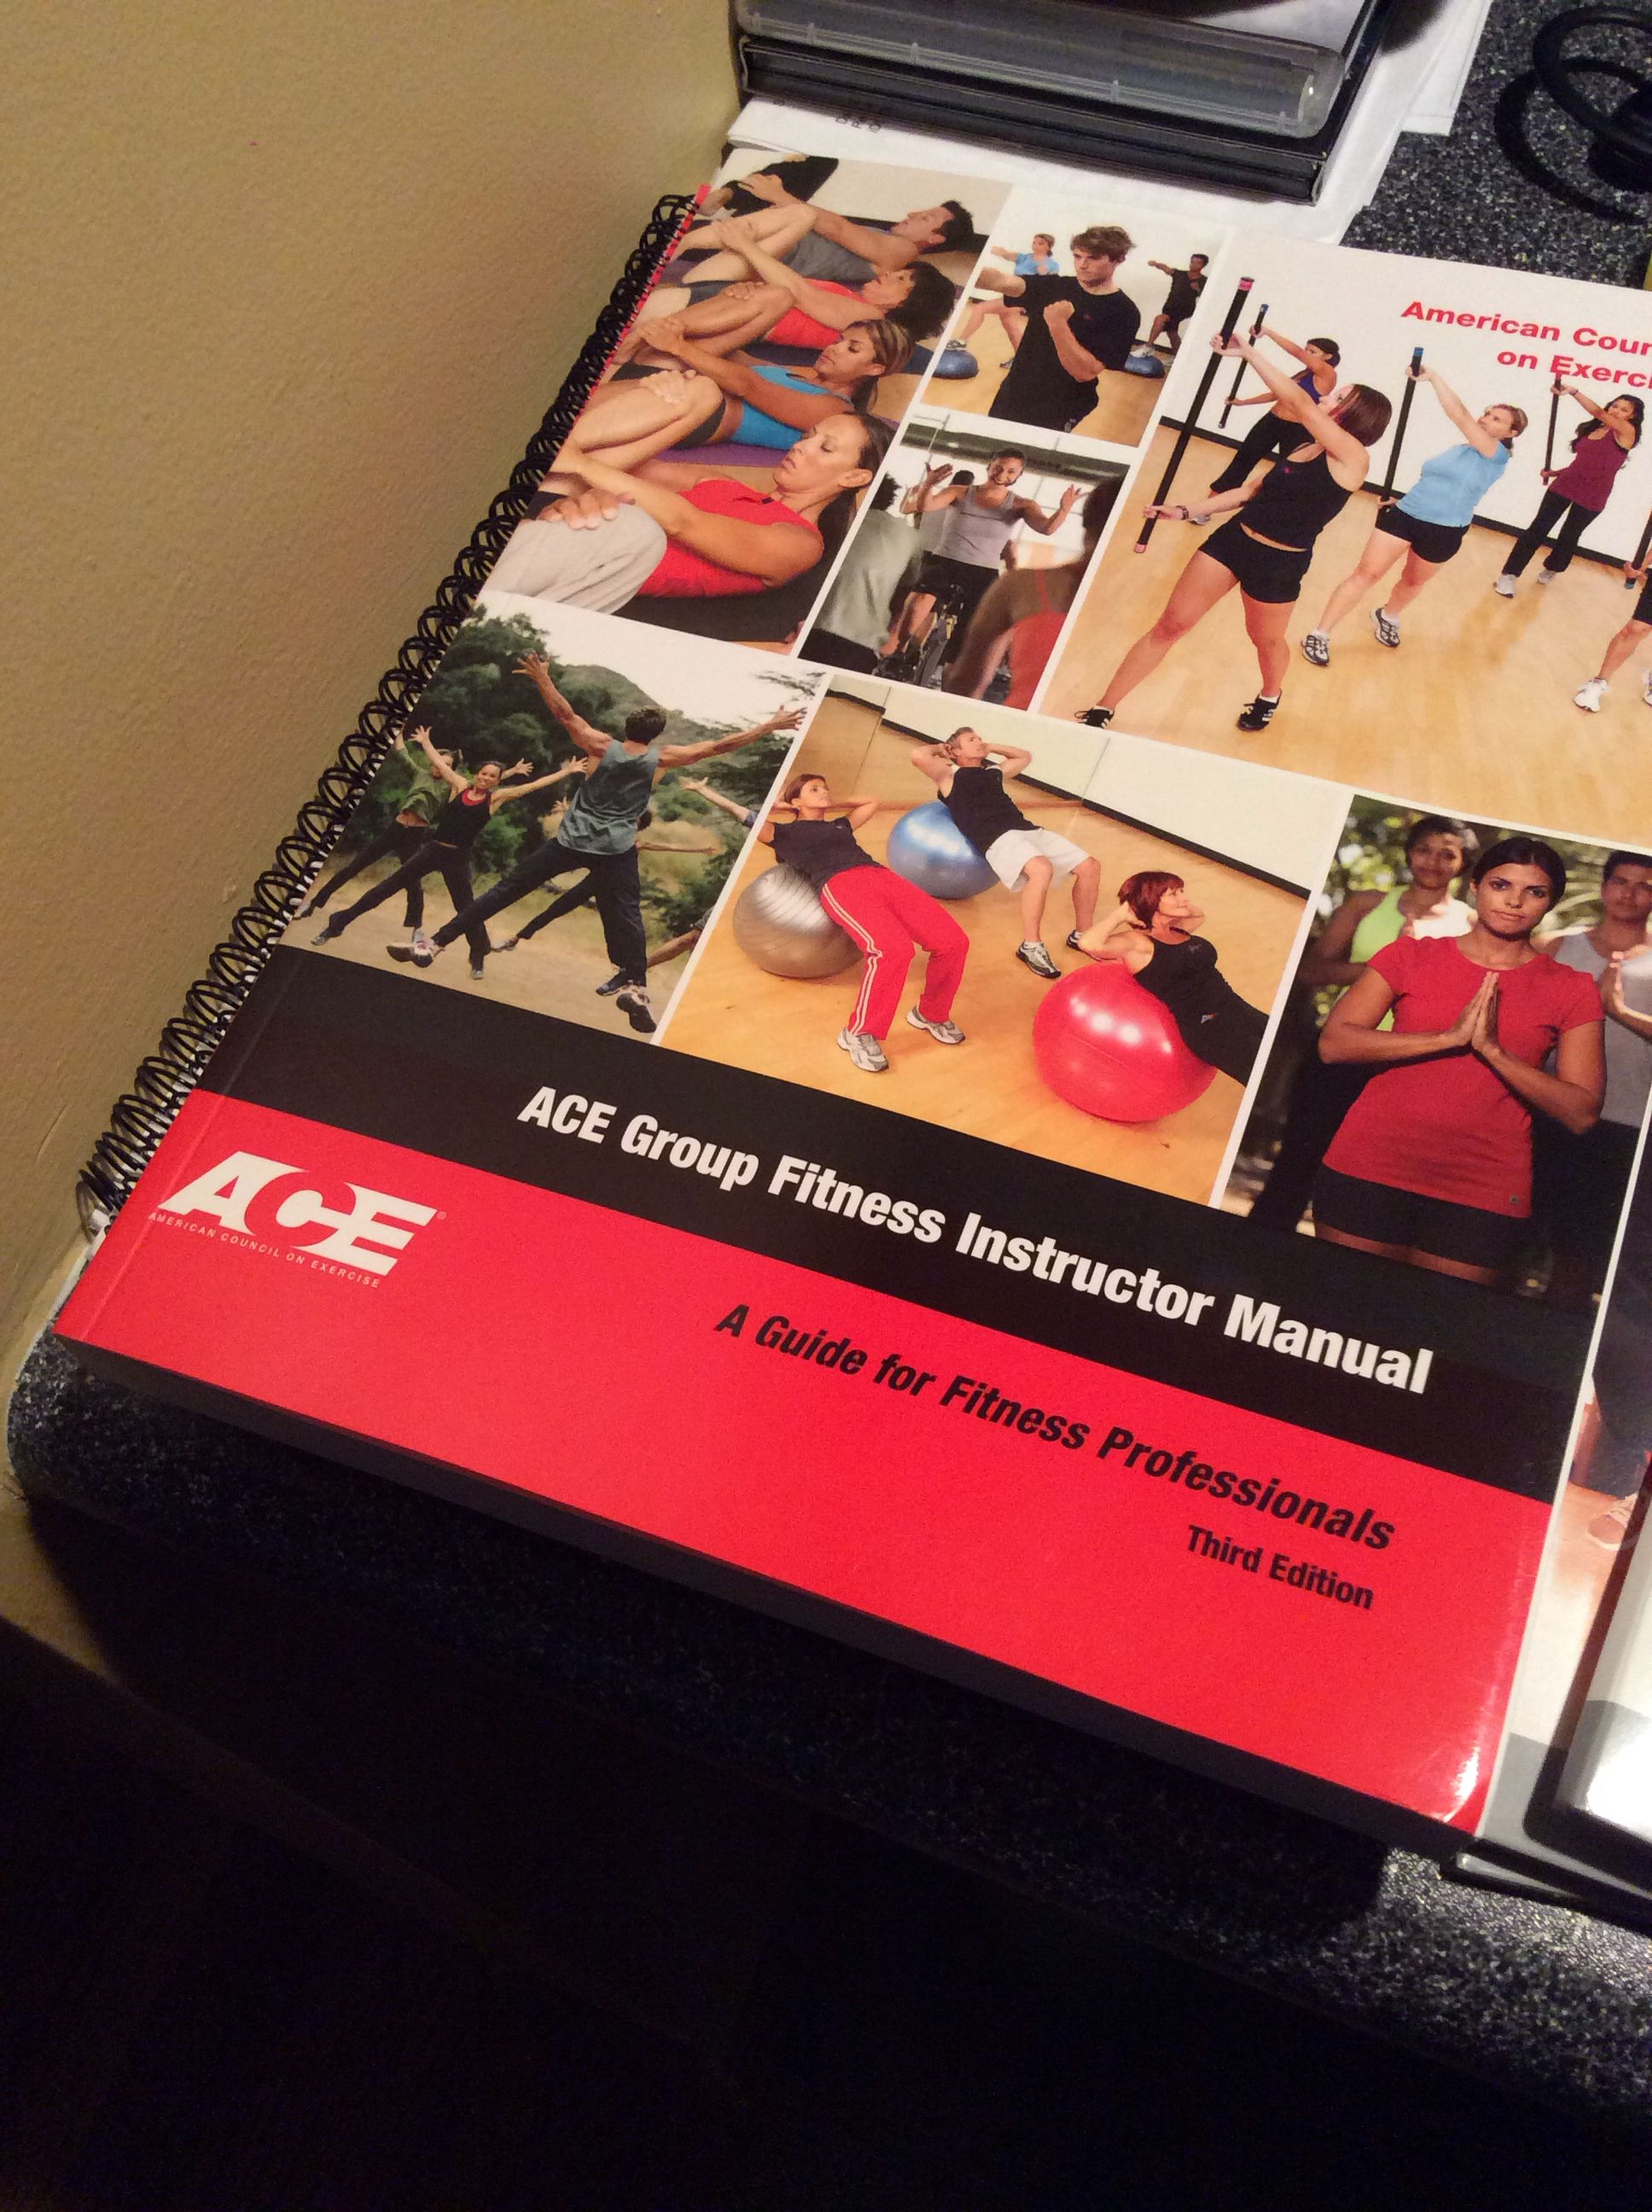 On my way to Ace Group Fitness Certification!! | i Am Certified ...